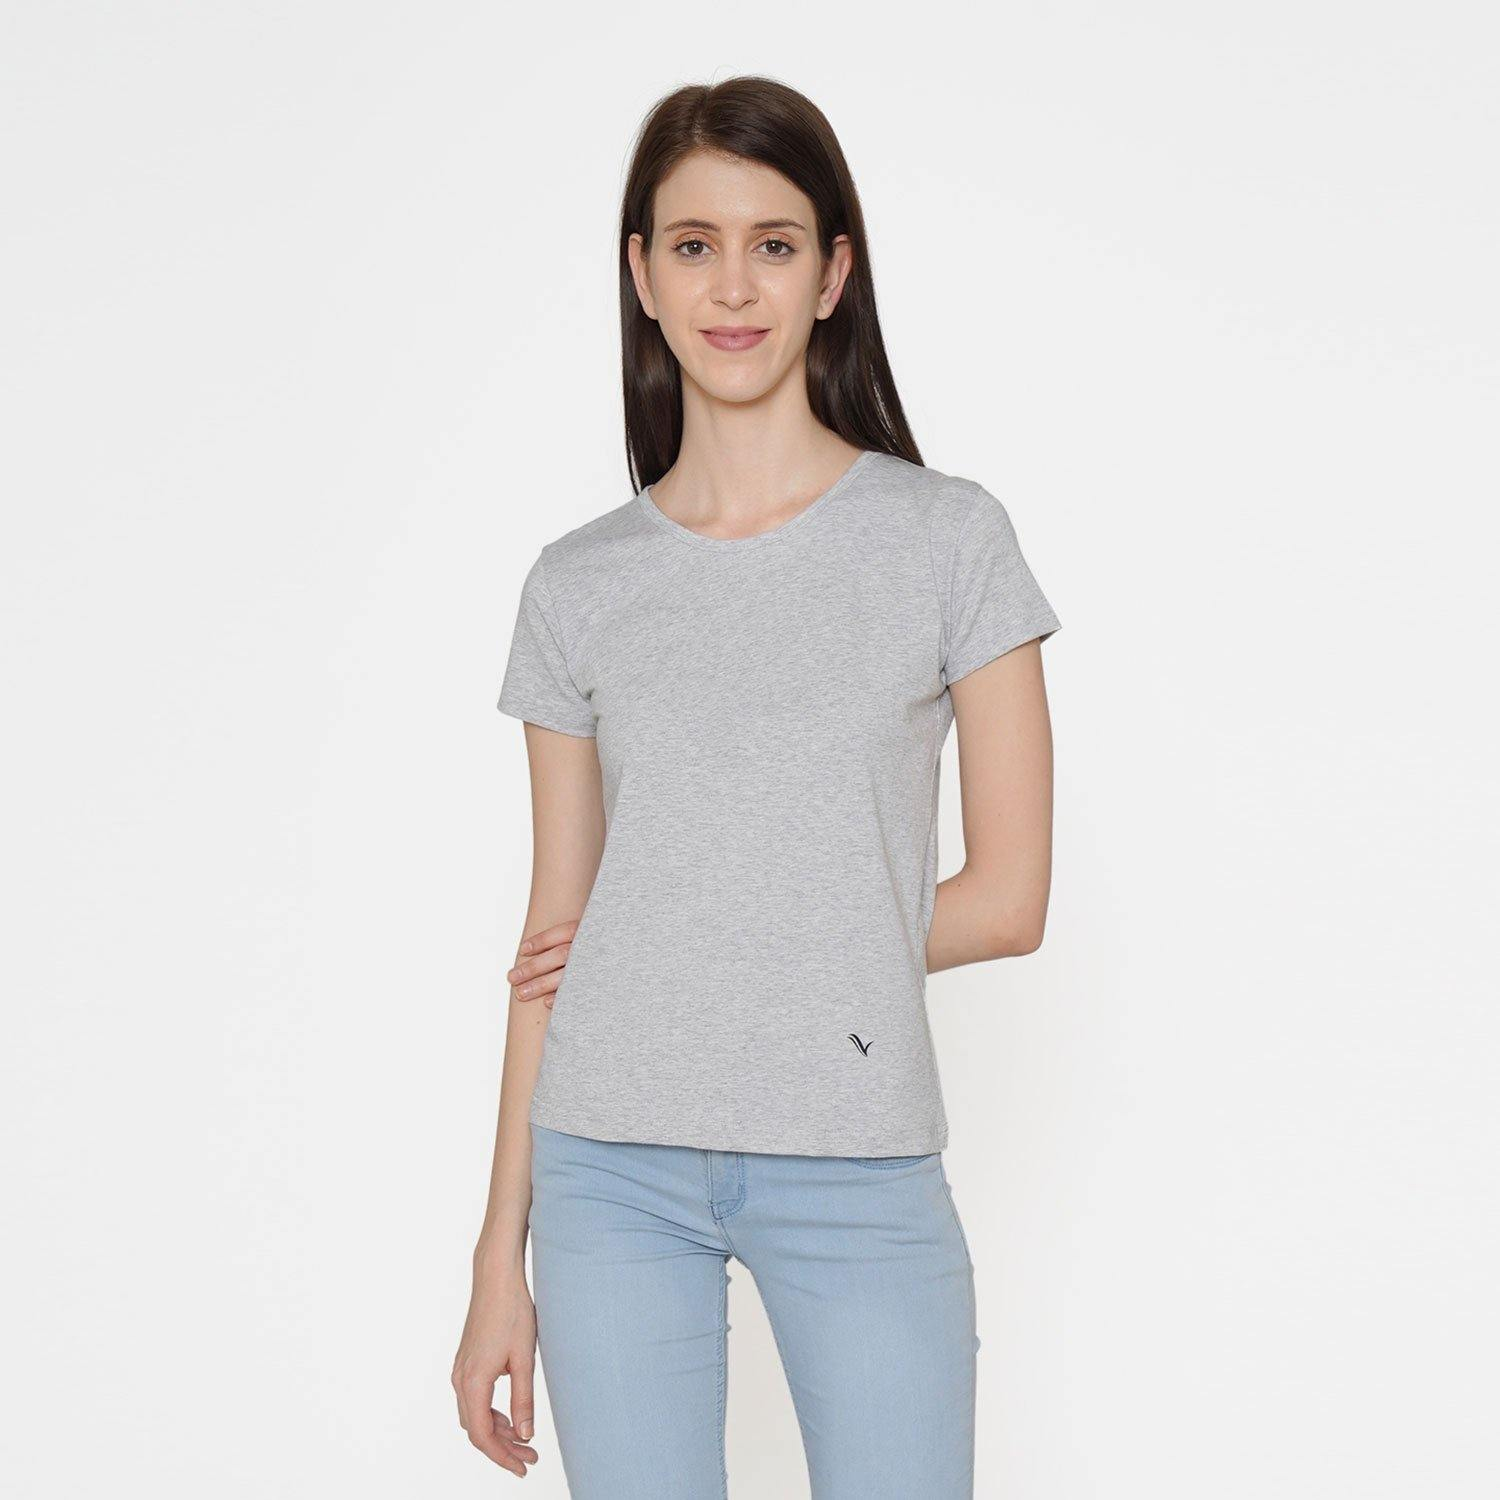 Plain Casual Half Sleeve Women's T-Shirt For Summer With Round Neck- Light Grey